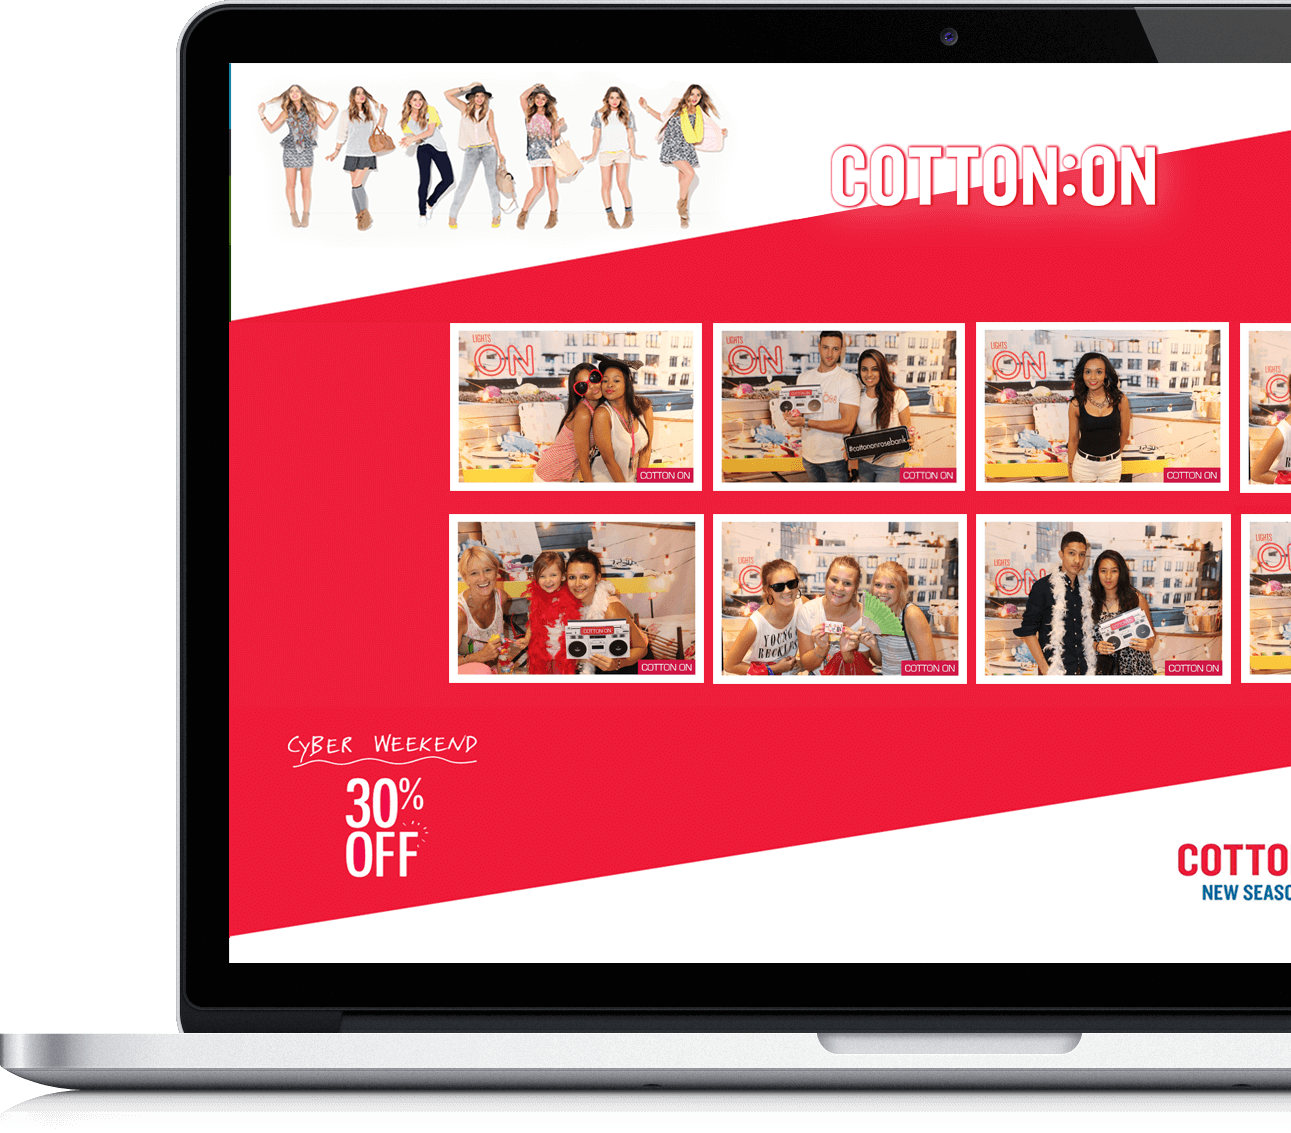 Maximise Brand Exposure - We improve your social media reach and brand awareness by creating custom overlays, emails, text message and website galleries all to match your brand.